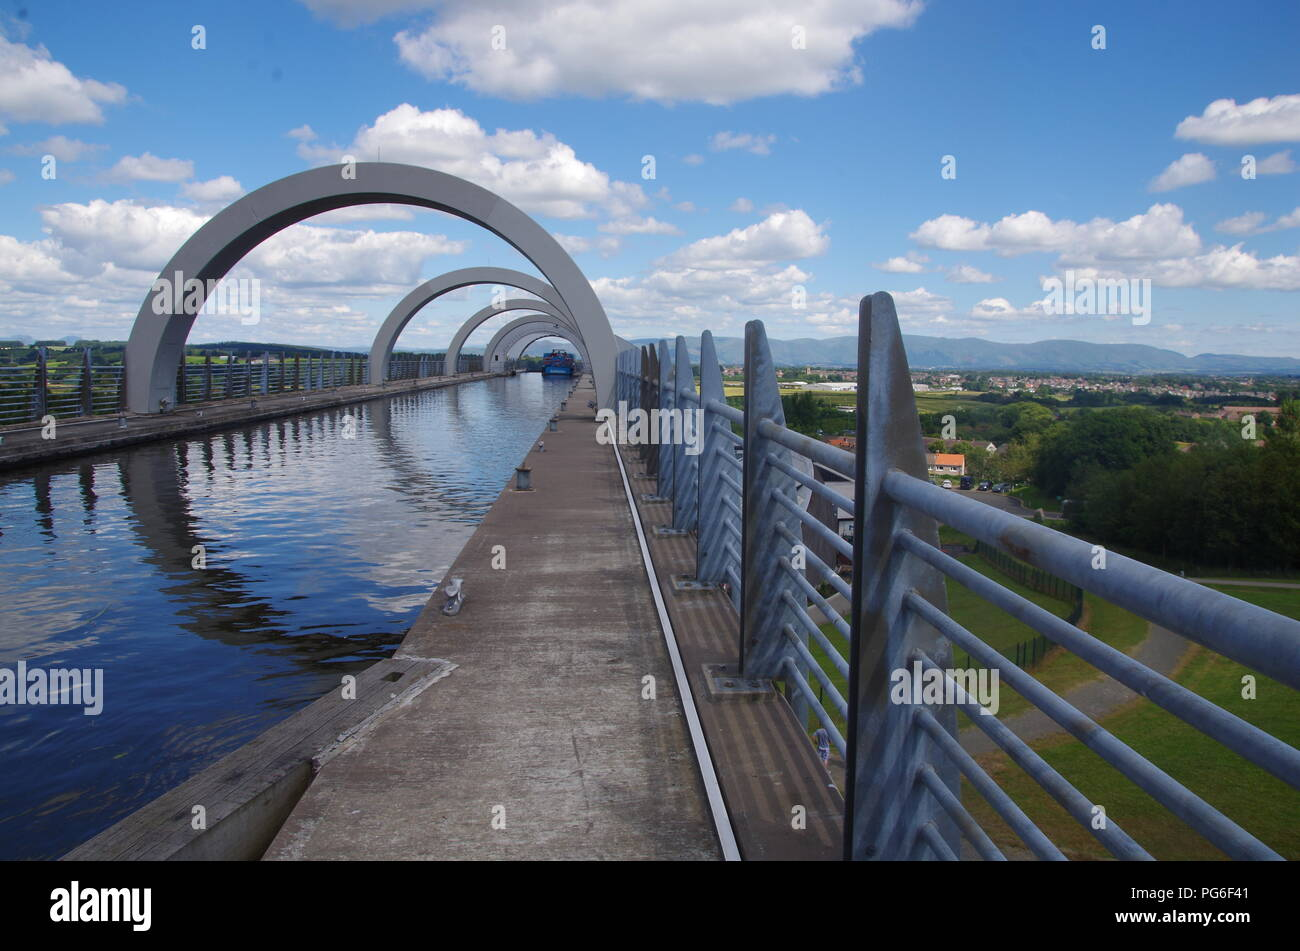 Falkirk Wheel. Union Canal. John o' groats (Duncansby head) to lands end. End to end trail. Highlands. Scotland. UK - Stock Image